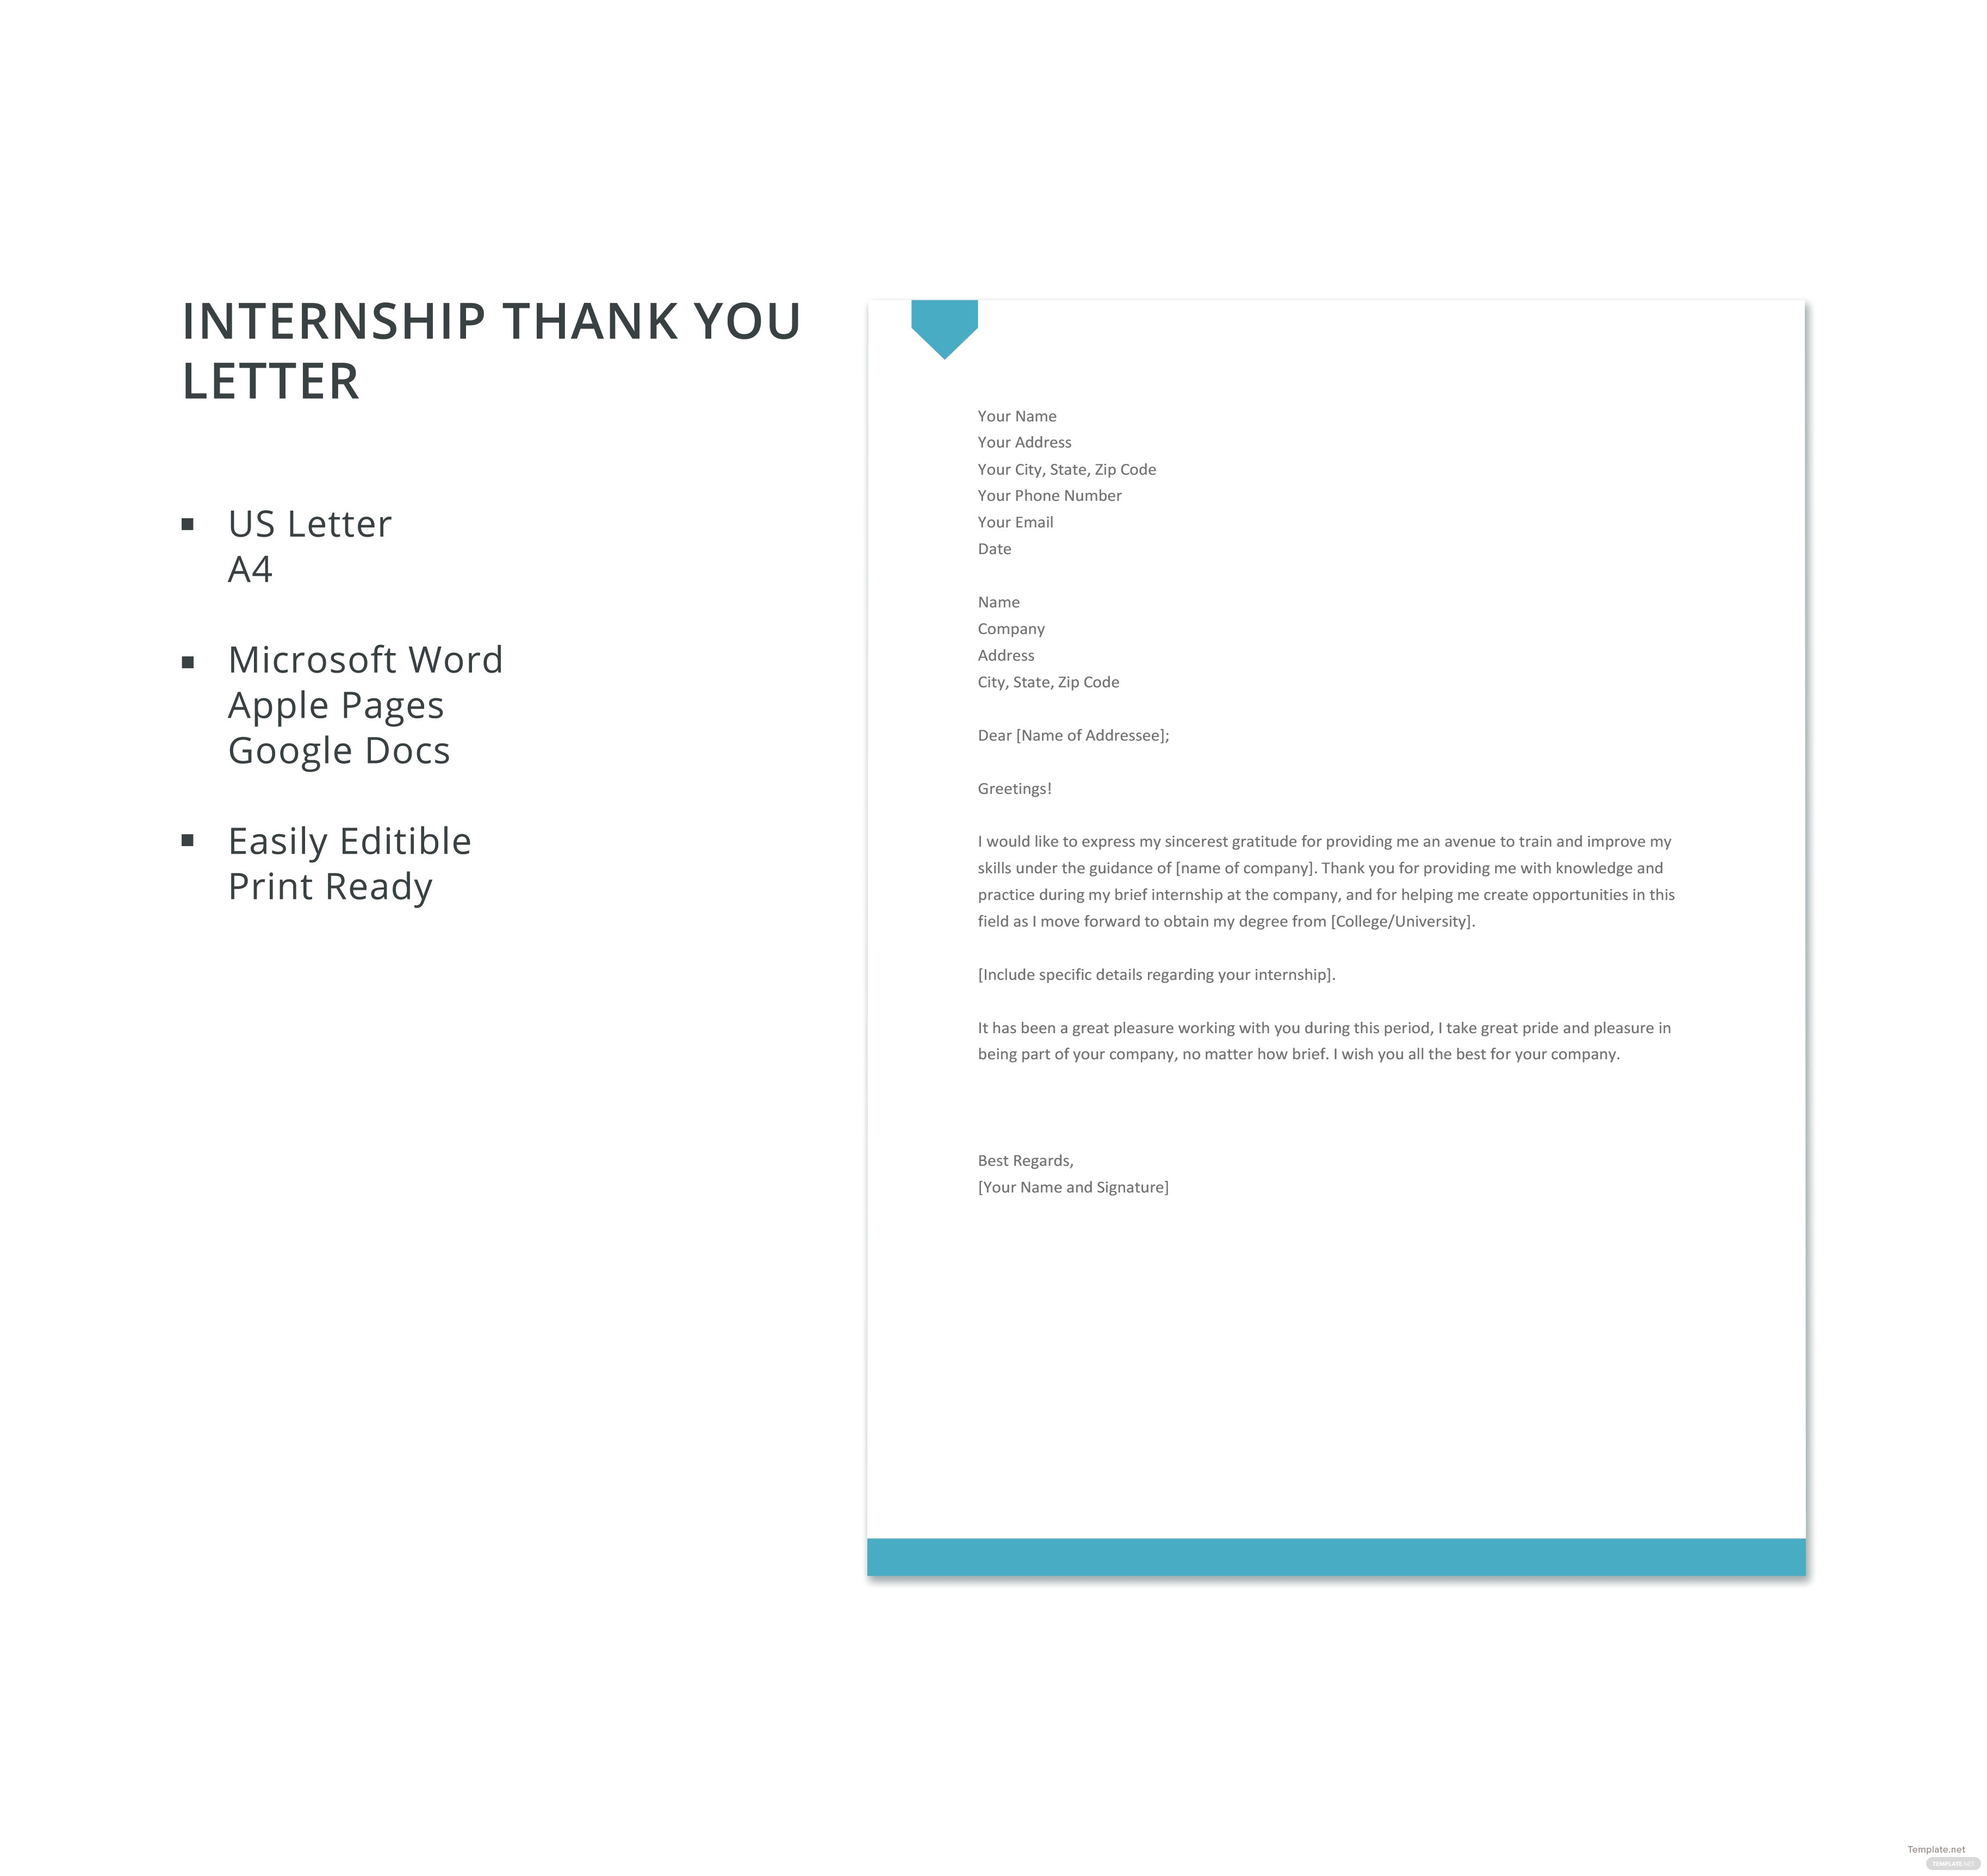 Free internship thank you letter template in microsoft word apple free internship thank you letter template thecheapjerseys Images